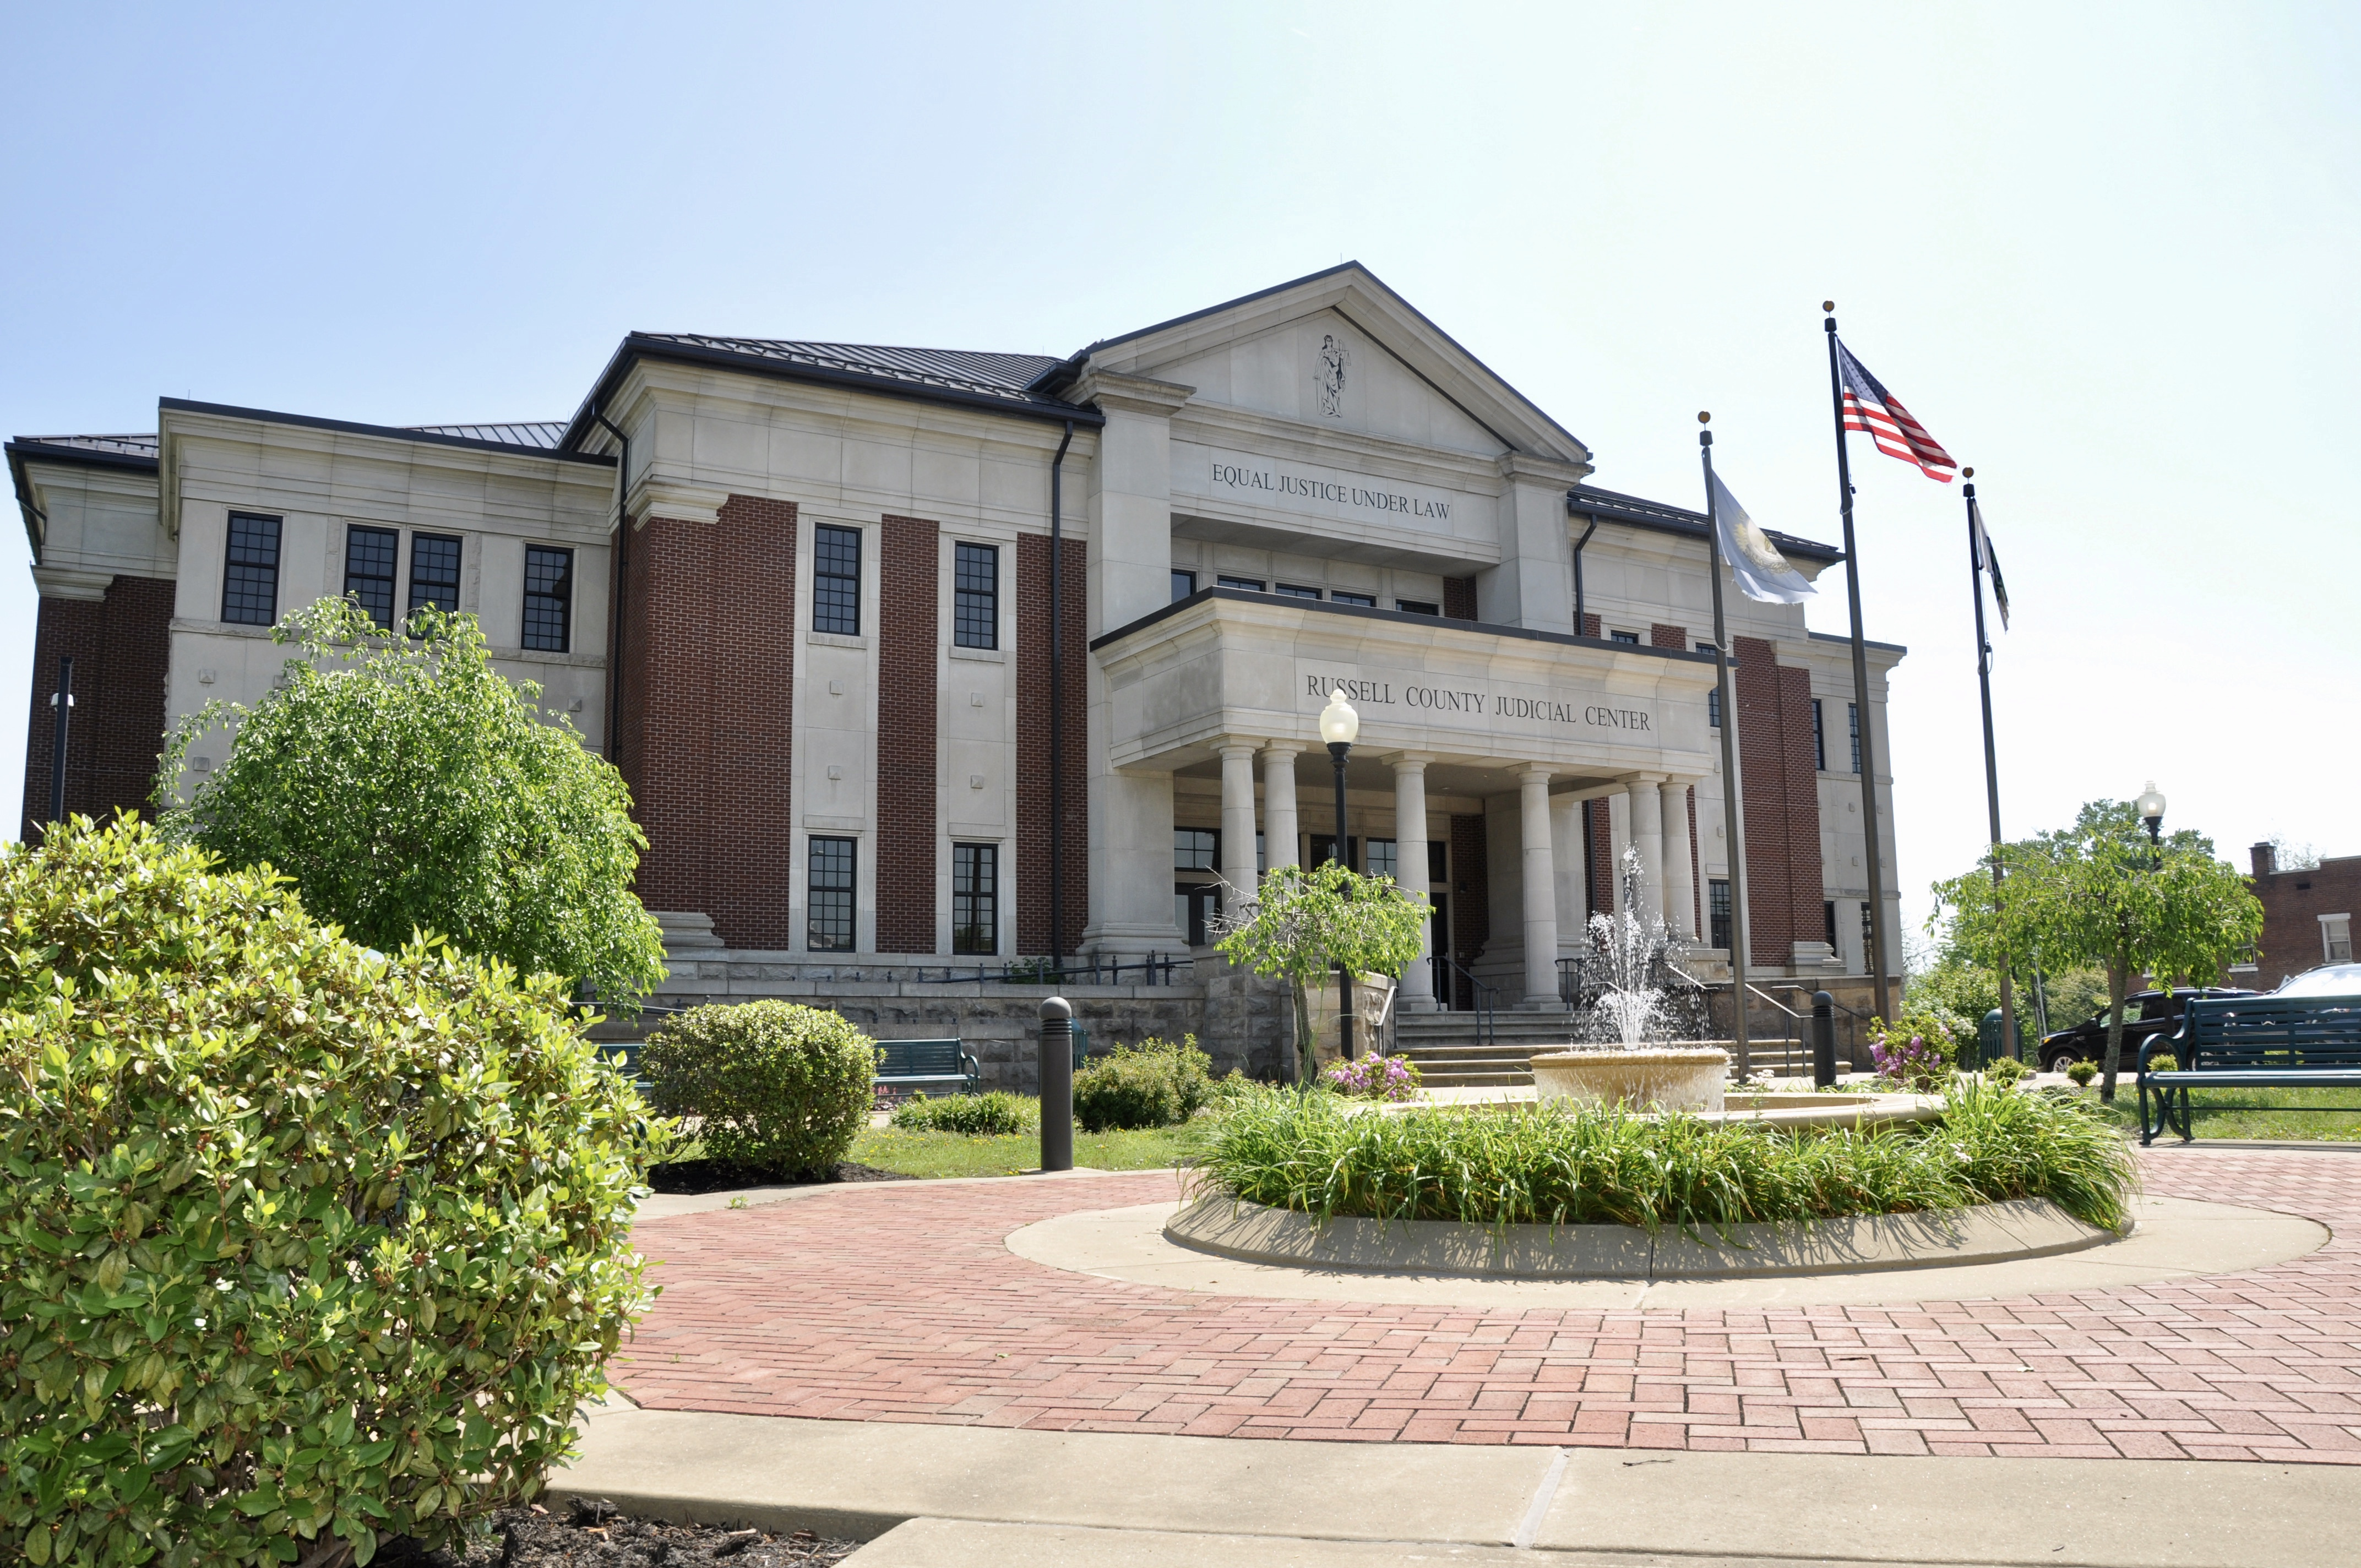 Russell County Judicial Center